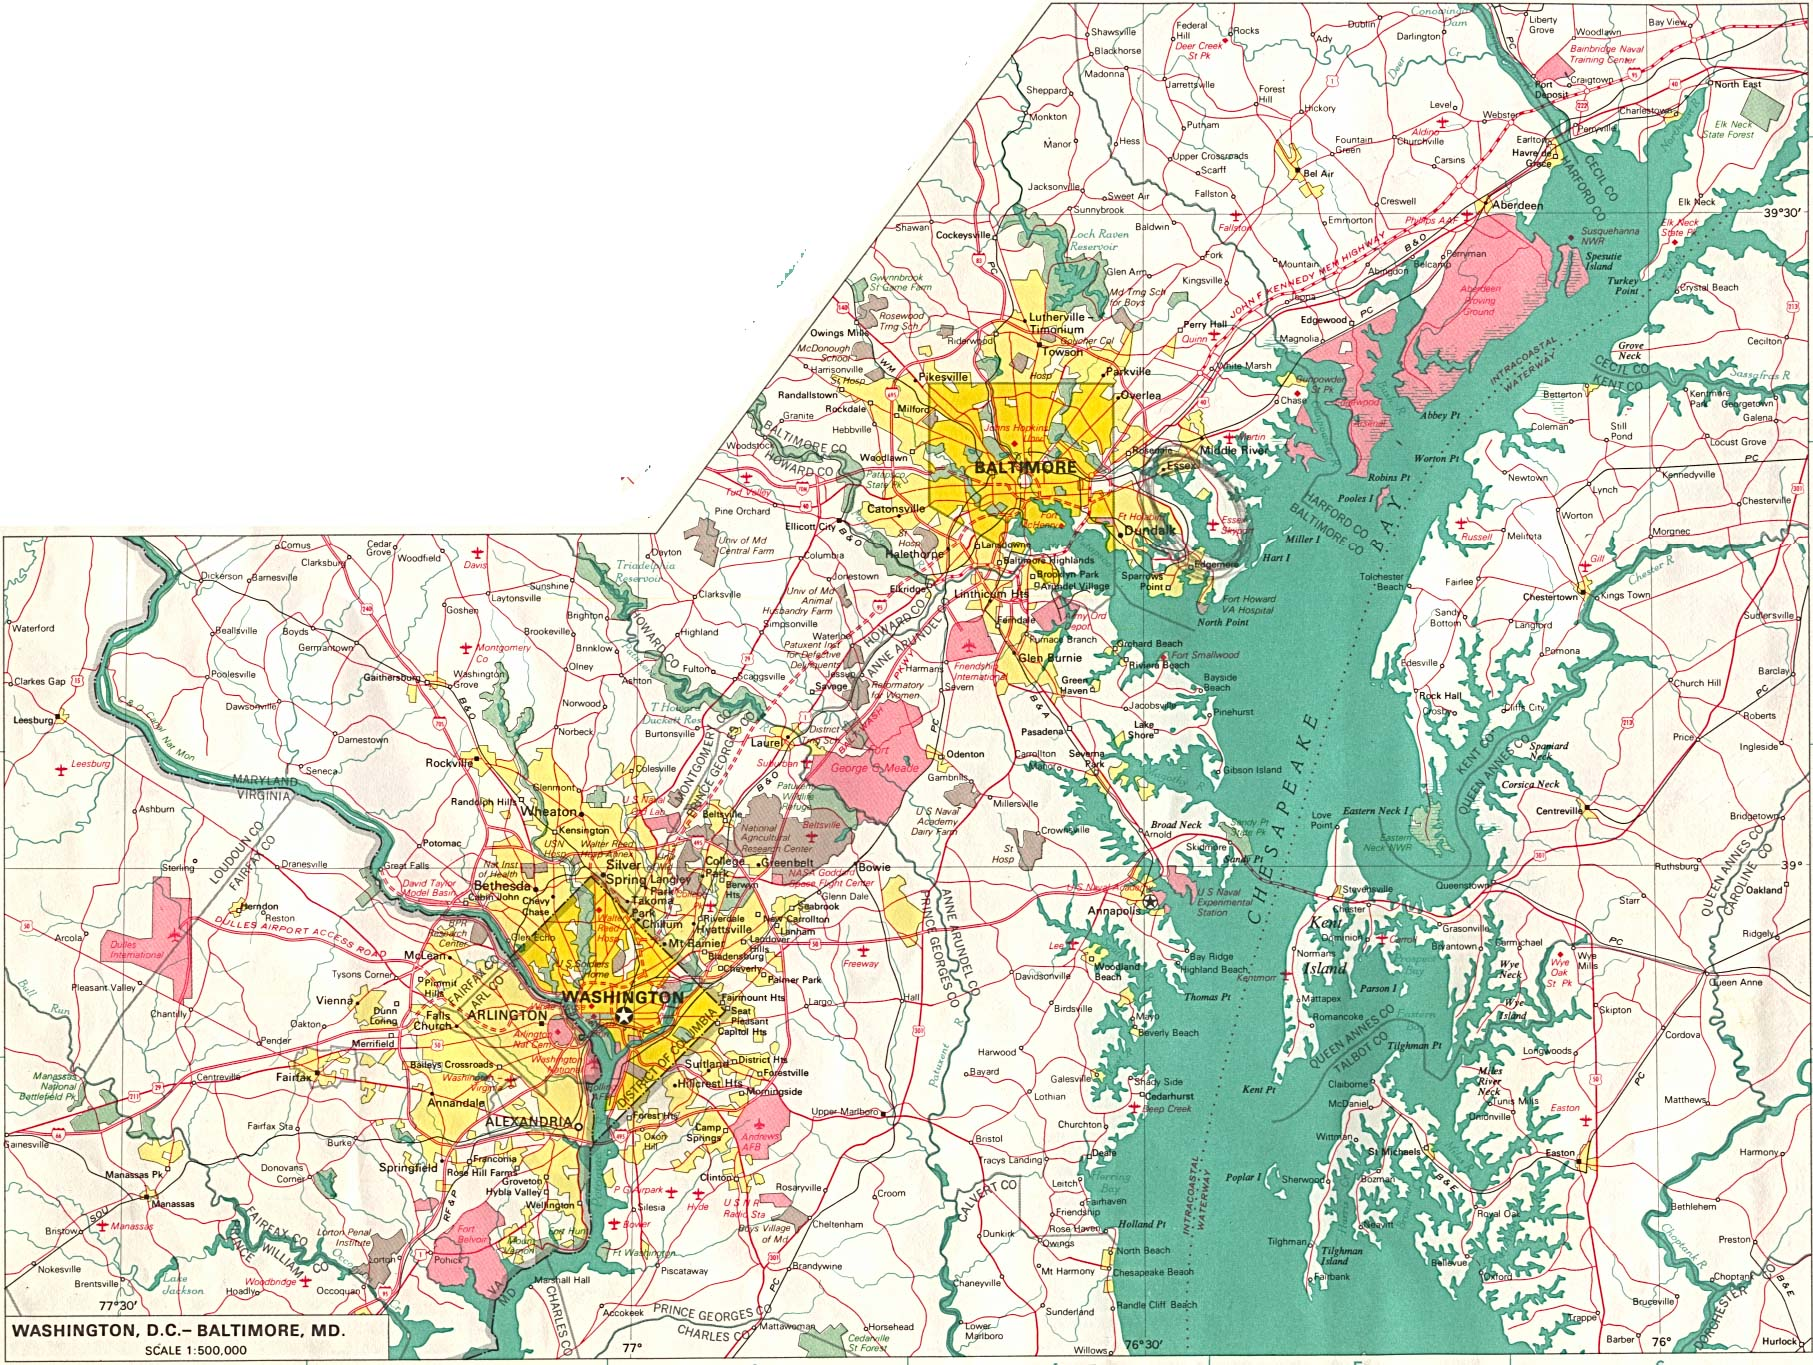 Baltimore City Map, Maryland, United States